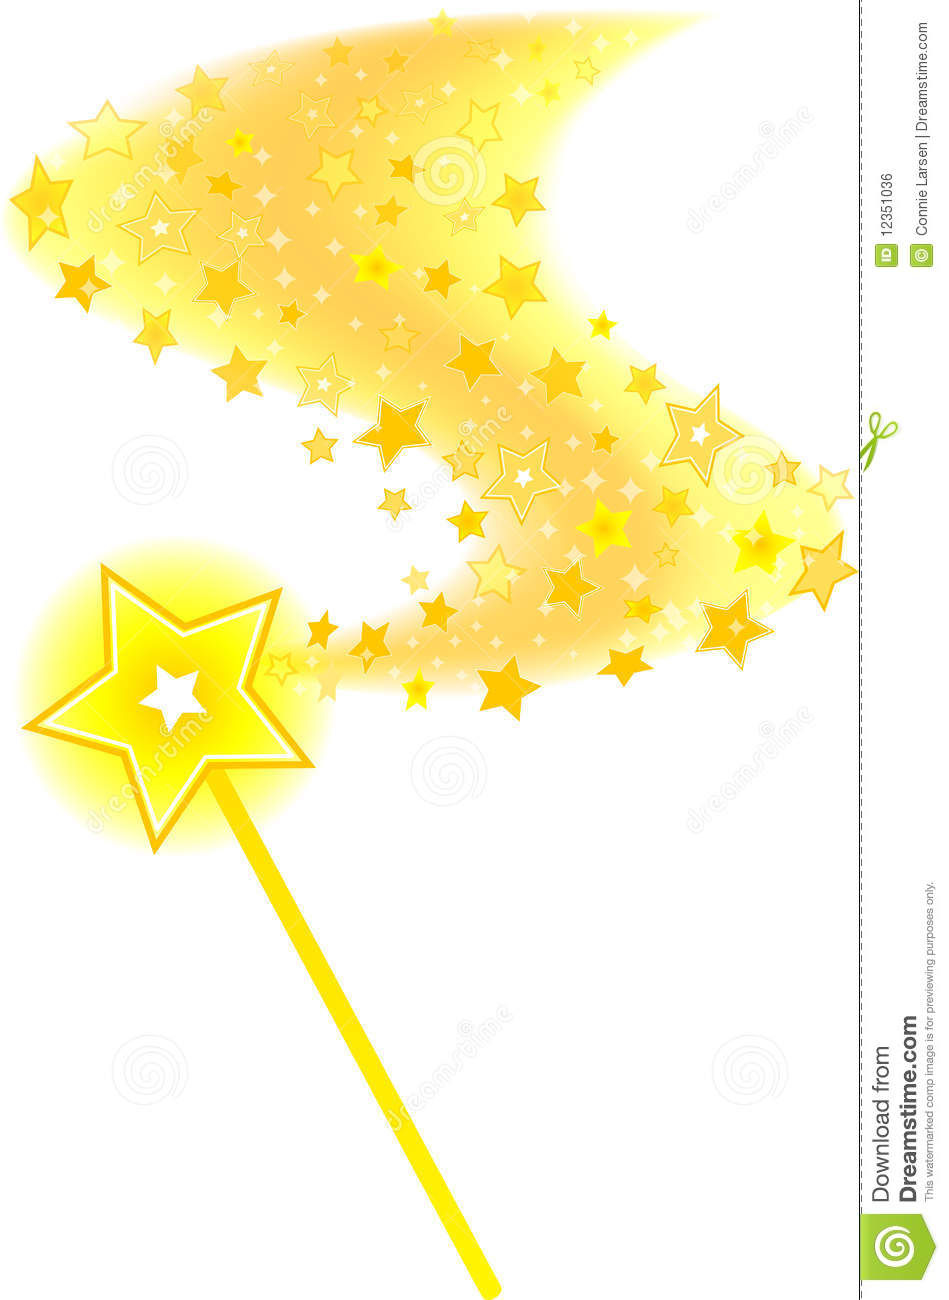 Animation Wallpaper Hd Free Download Magic Wand Star Trail Royalty Free Stock Image Image